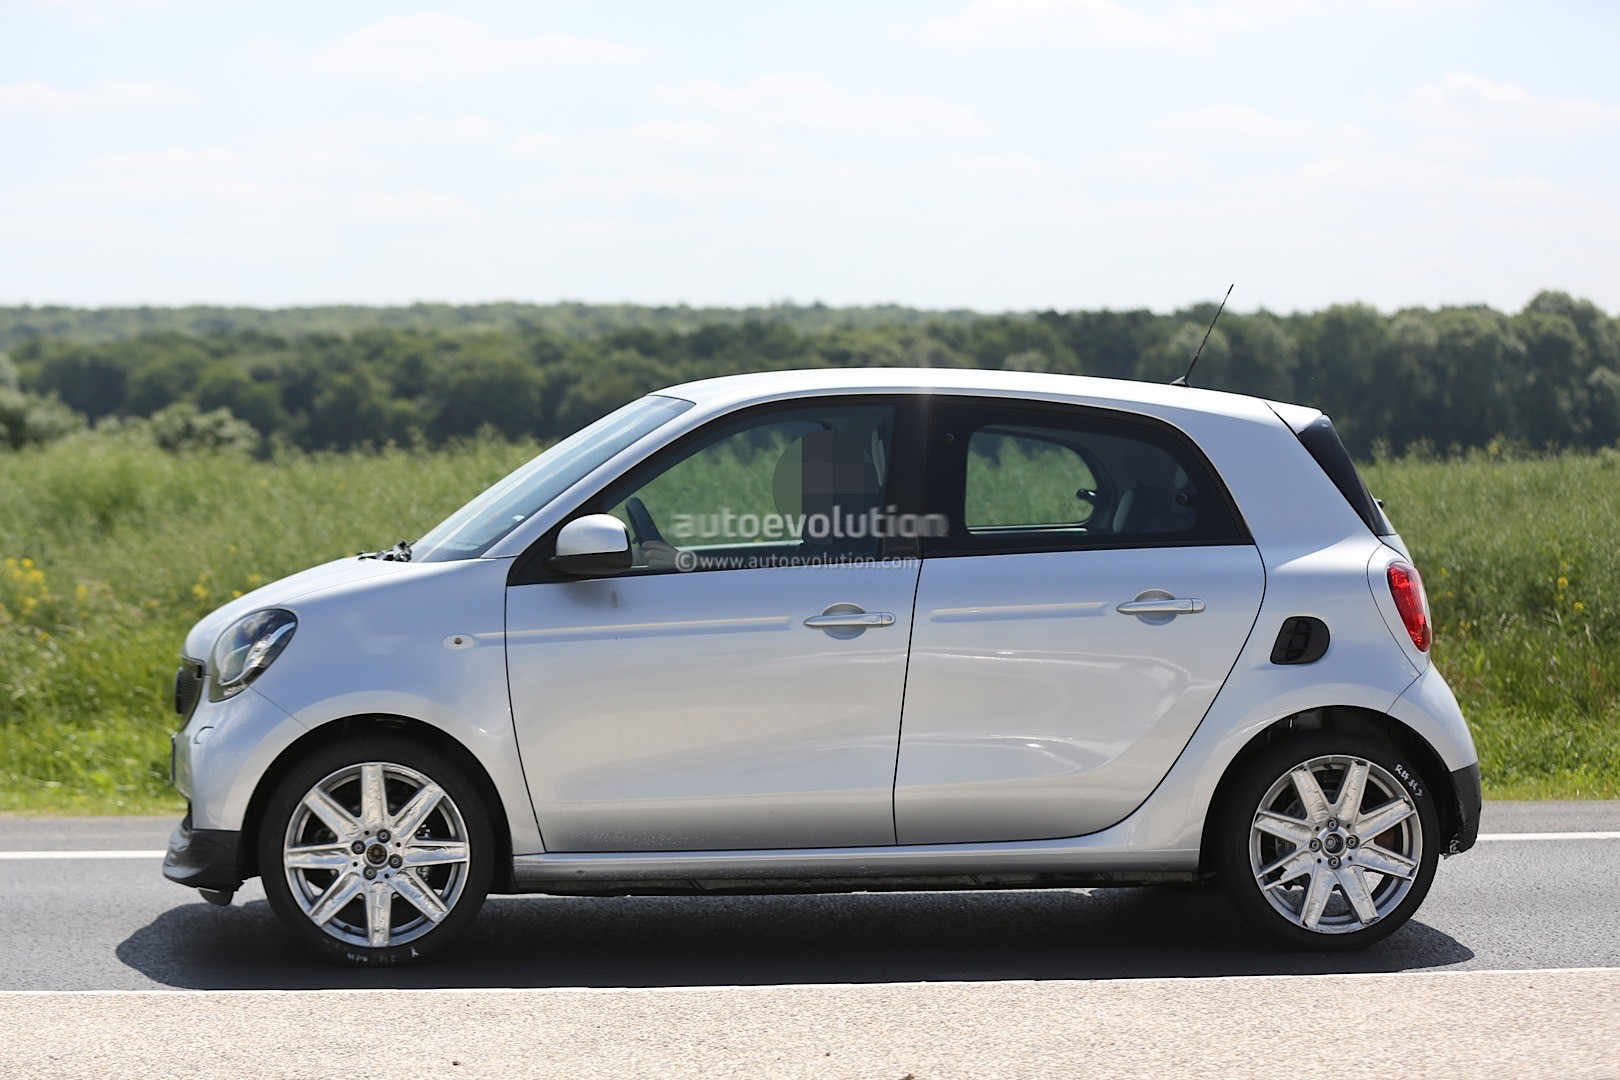 spyshots 2016 smart forfour brabus looks ready to rumble. Black Bedroom Furniture Sets. Home Design Ideas